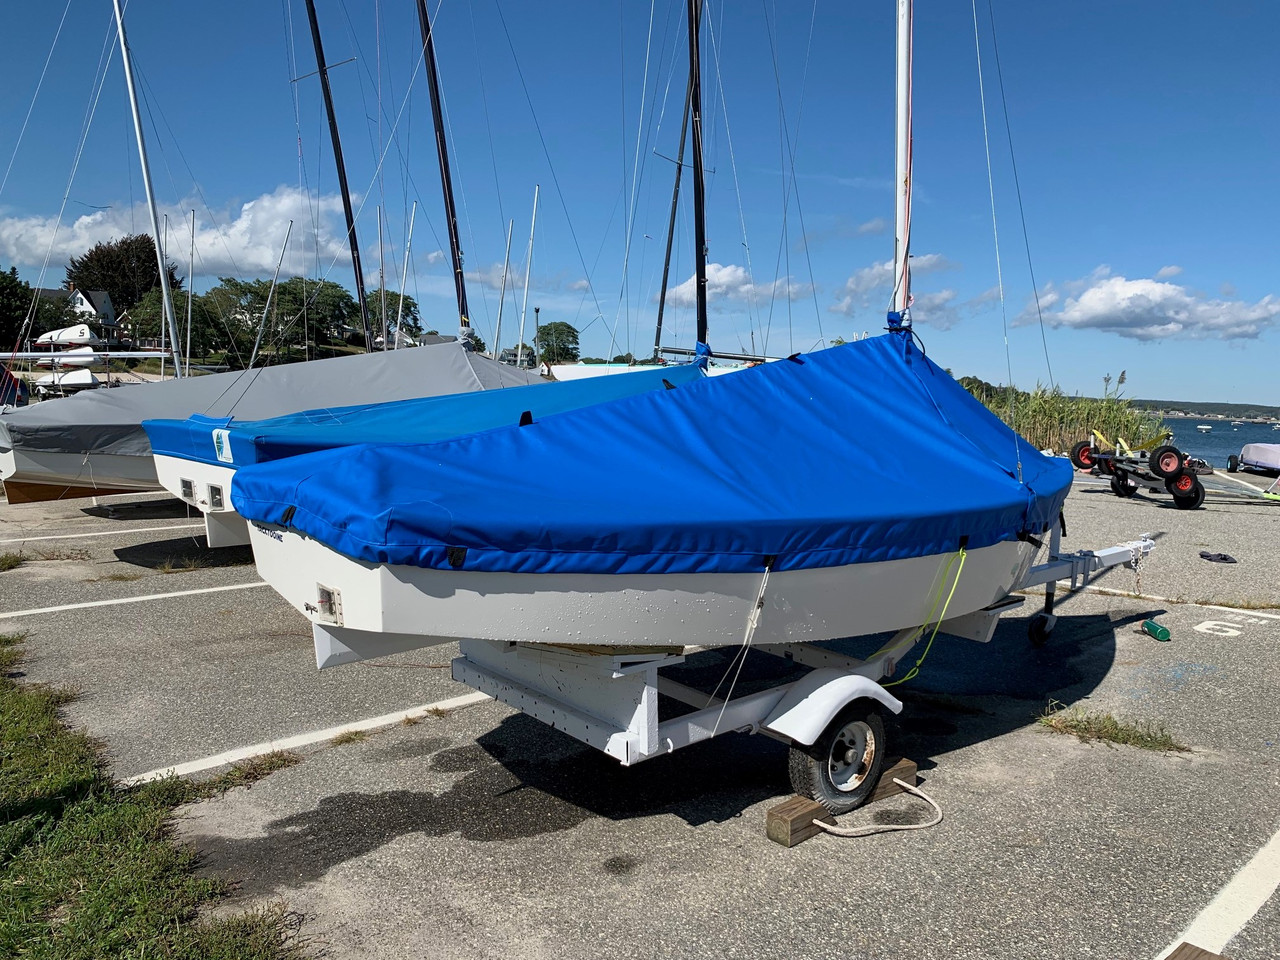 Our Blue Jay Mast Up Mooring Cover is available in many fabric and color choices.